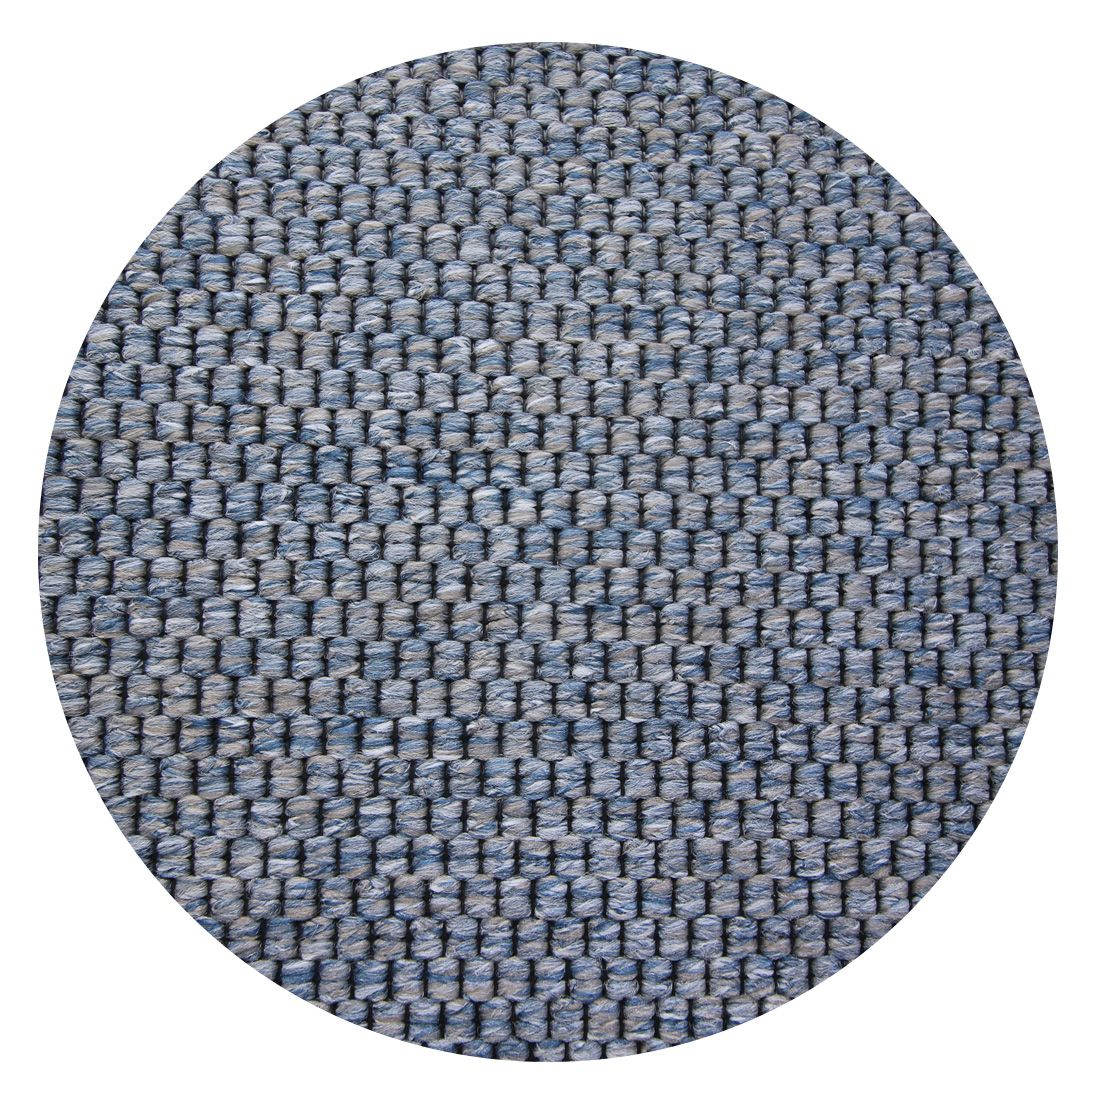 Rond Vloerkleed Casablanca Natura Geweven Denim